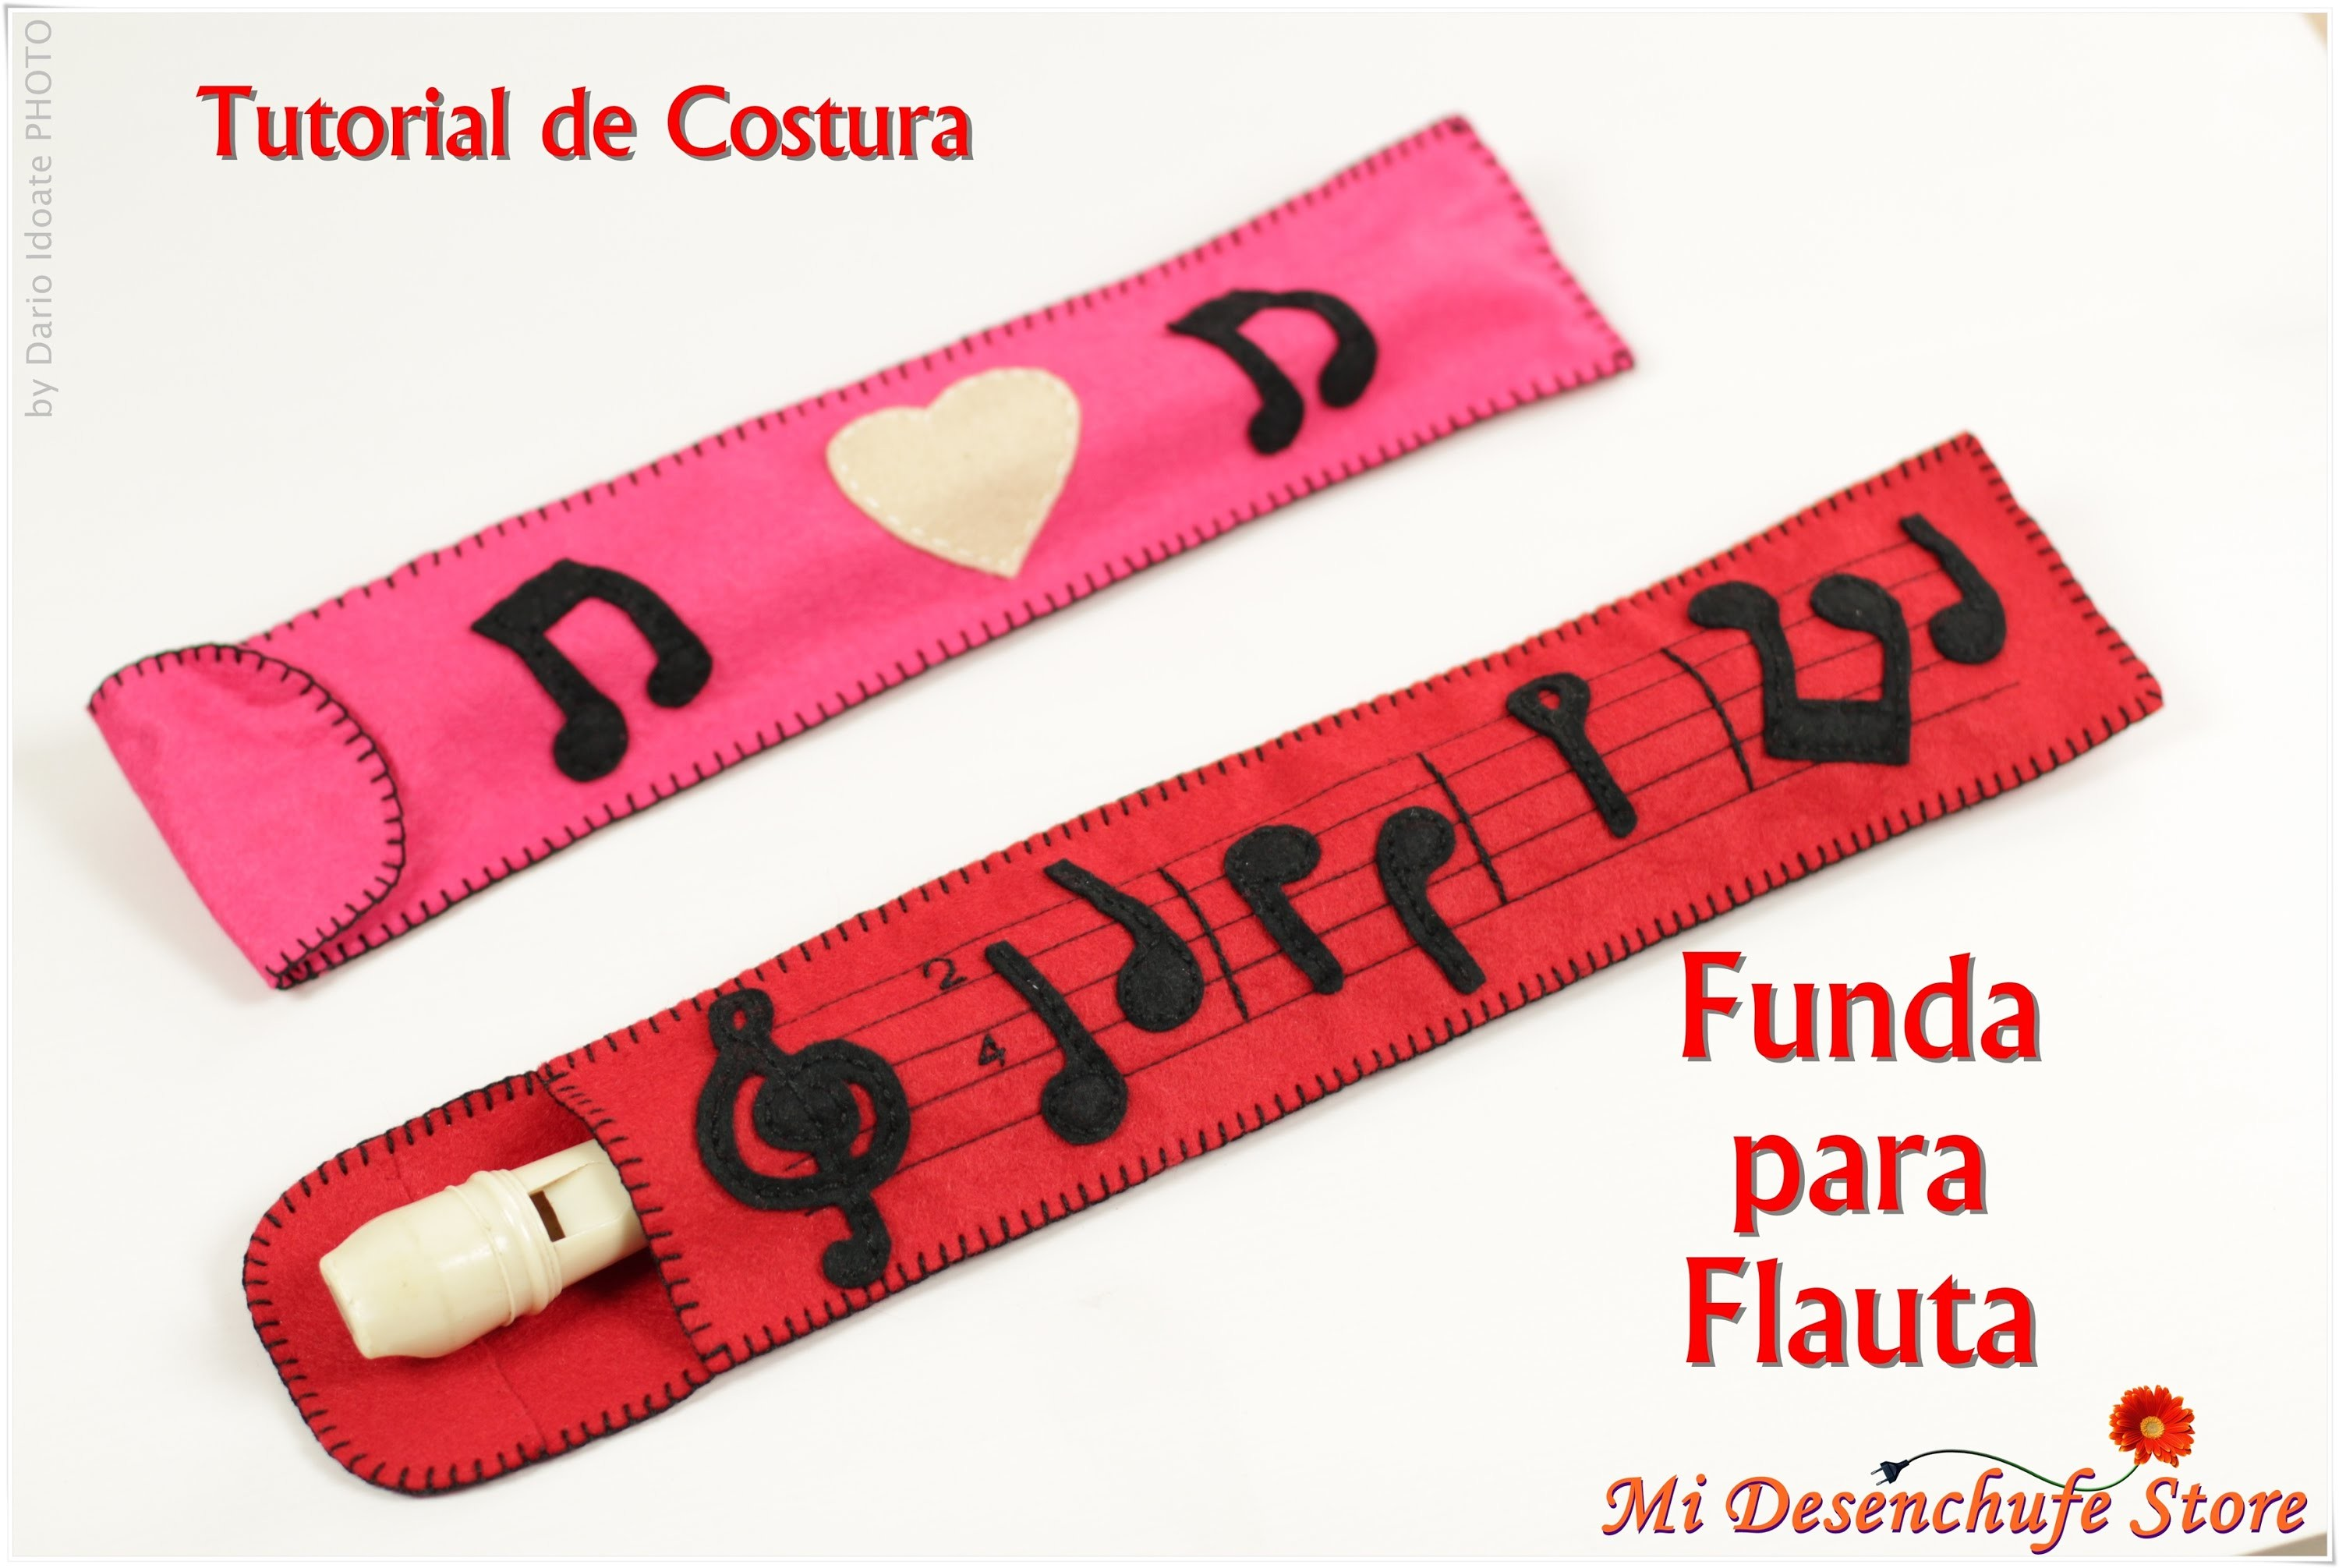 Tutorial #13 - Como hacer una Funda para Flauta - How to make a case for flute